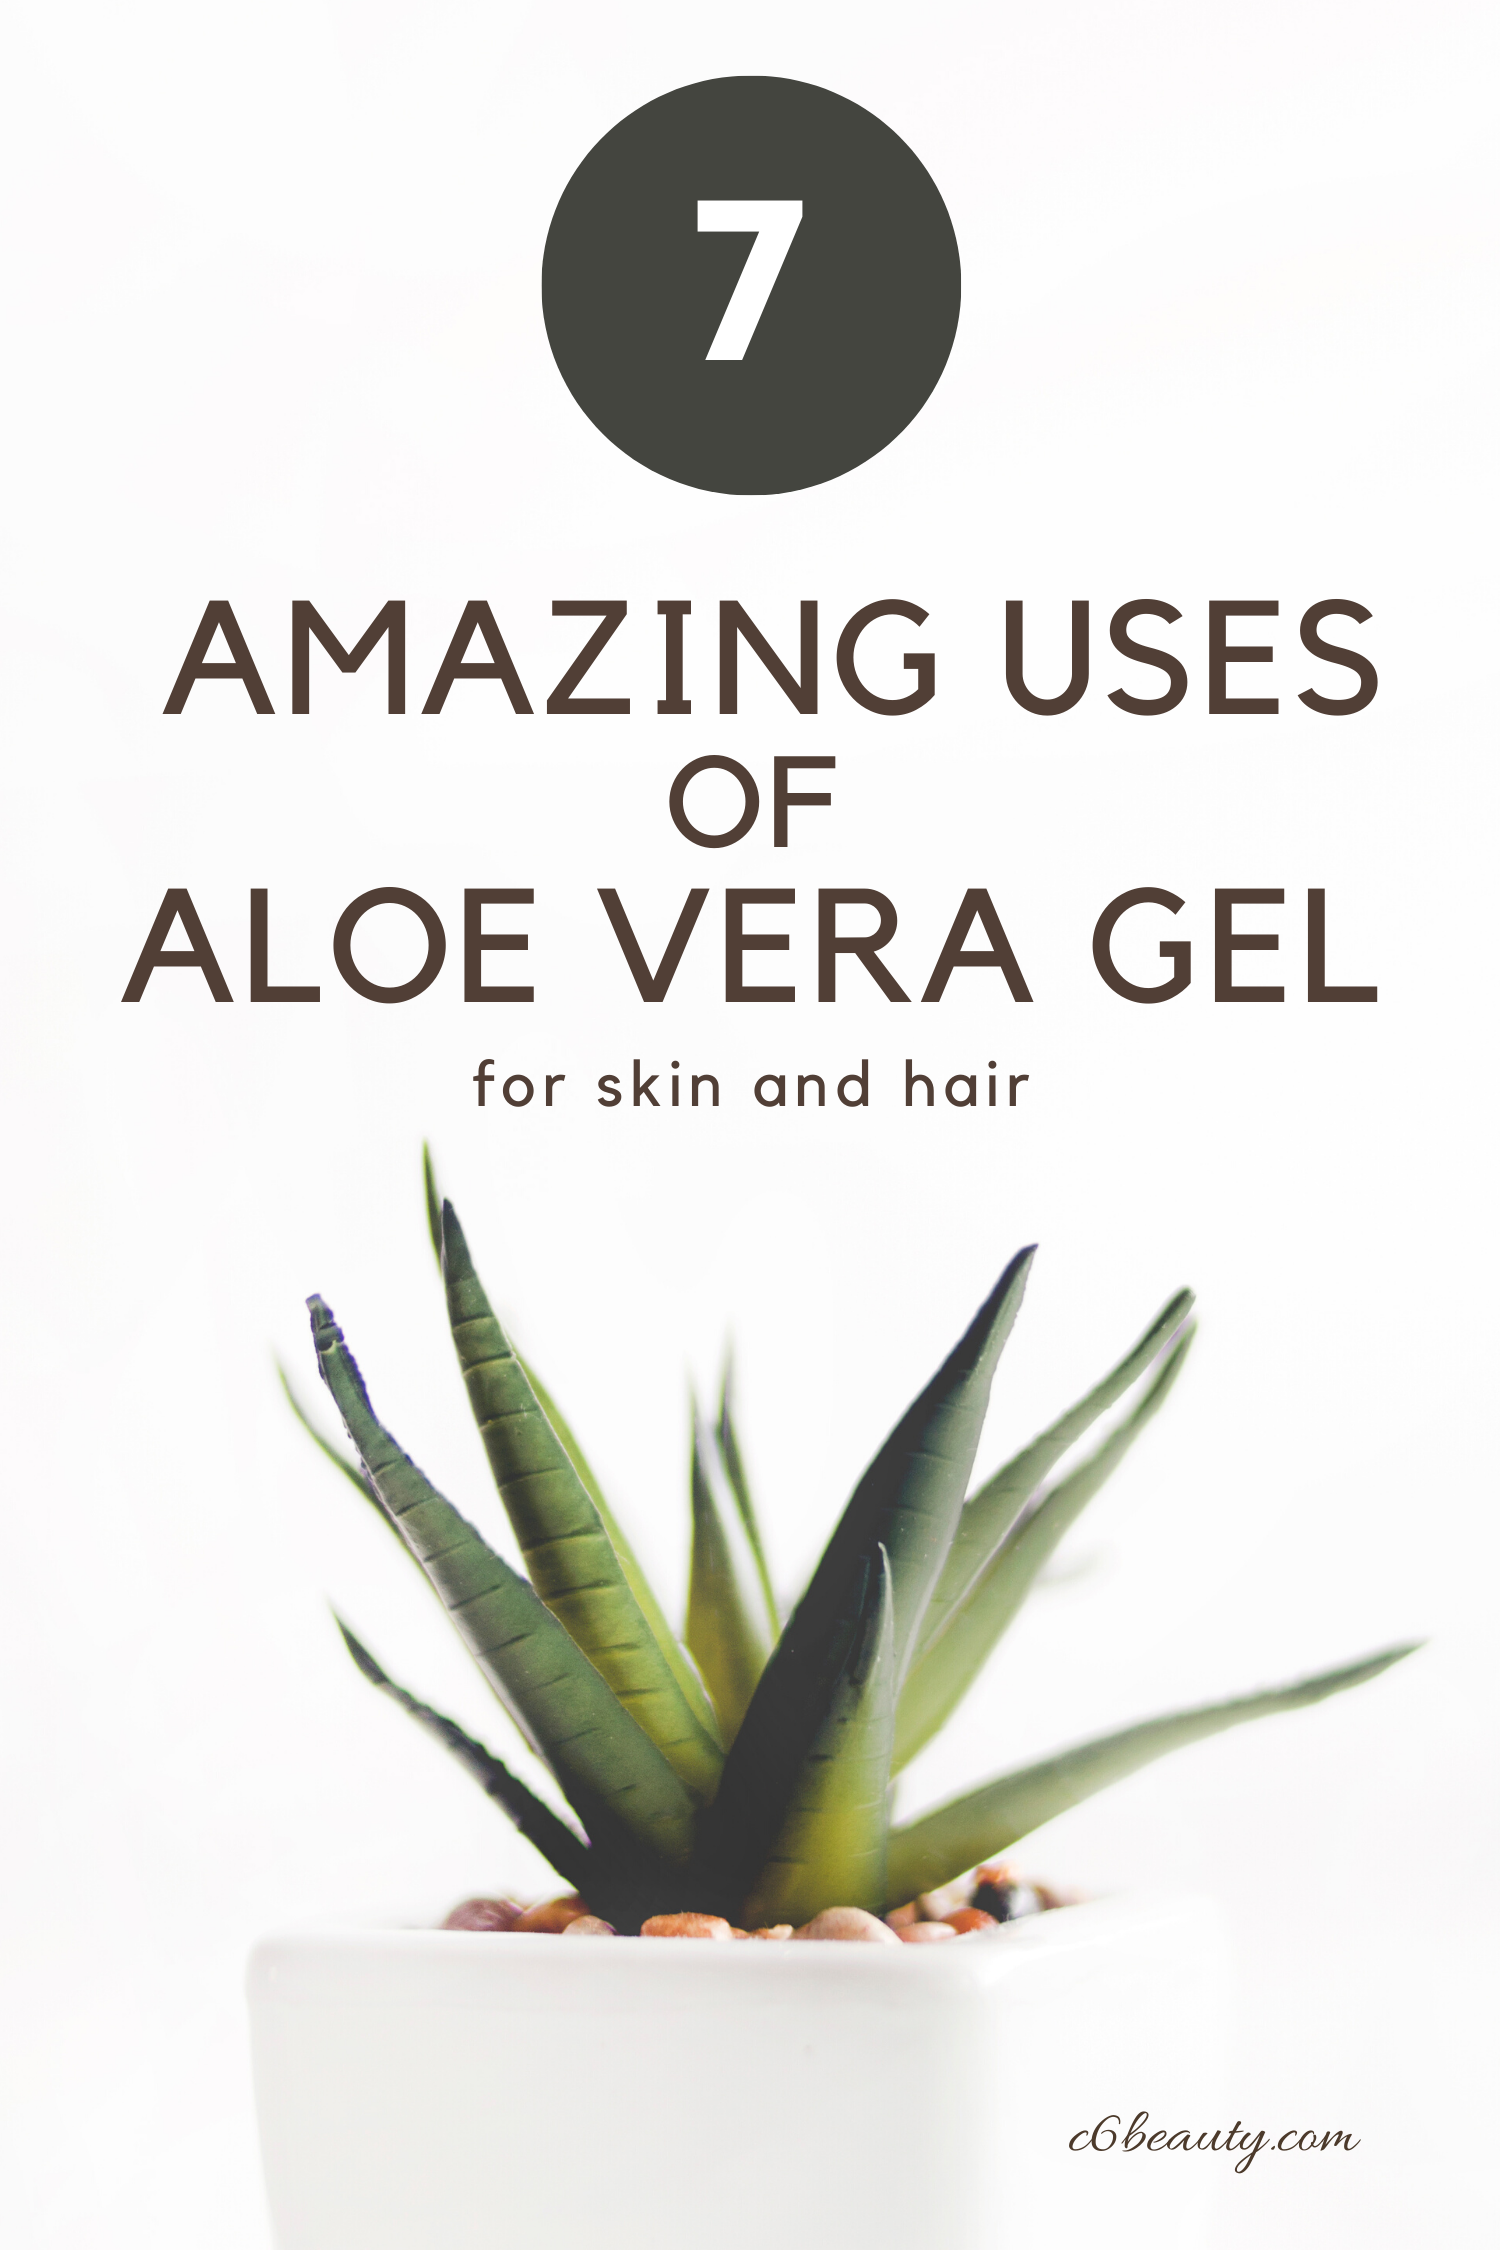 7 amazing uses of aloe vera gel for hair and skin